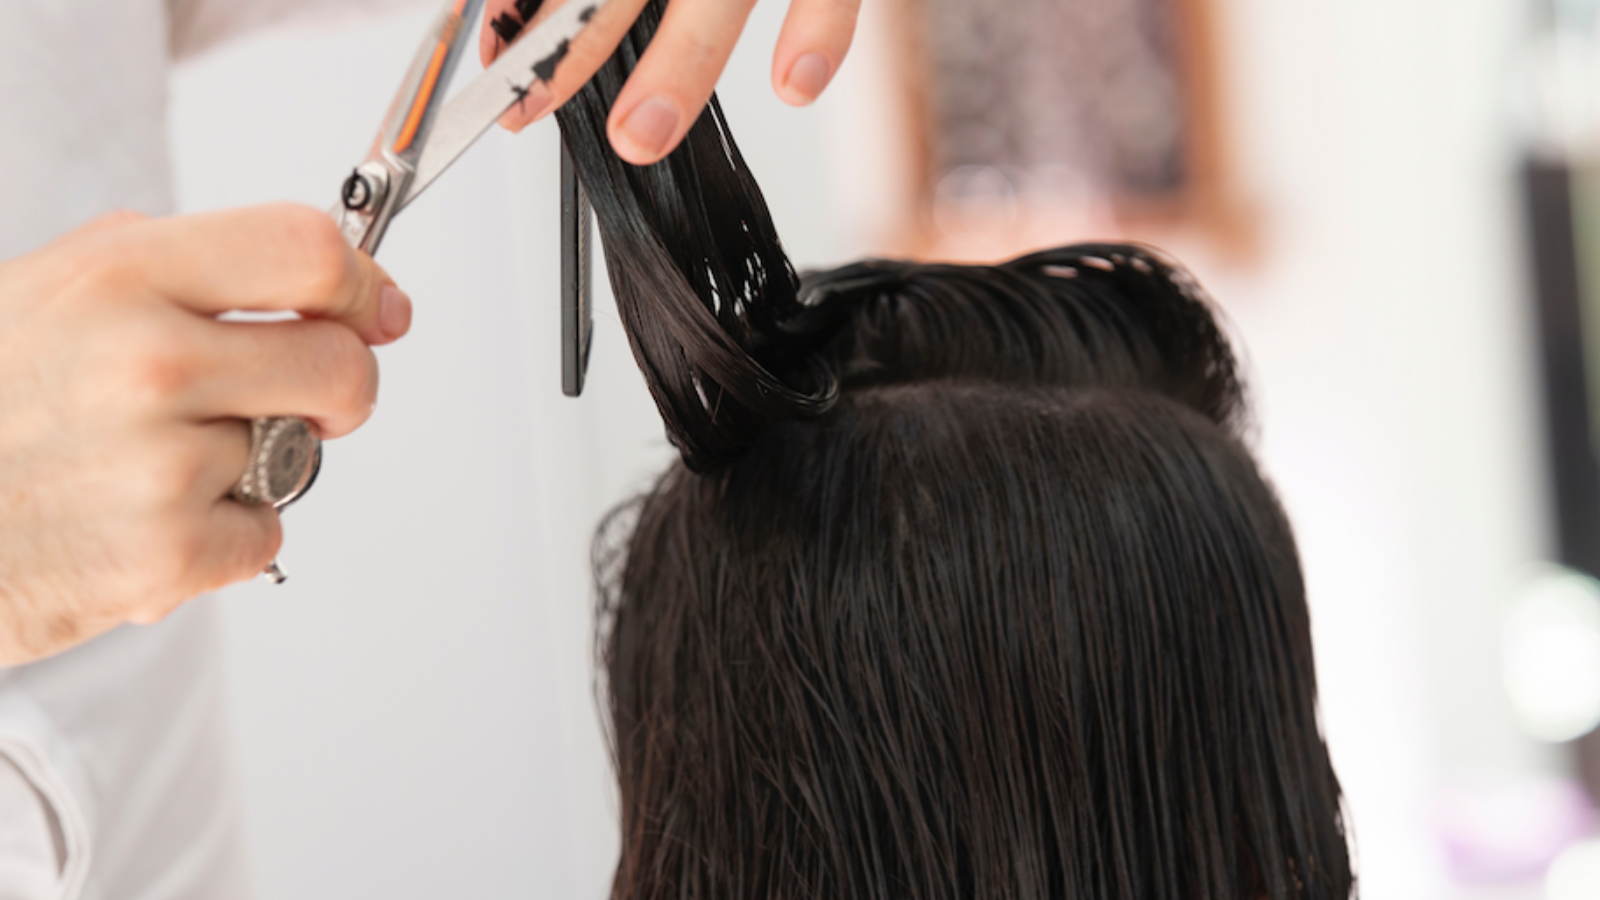 Should you get a haircut during the coronavirus pandemic? This is what the experts say